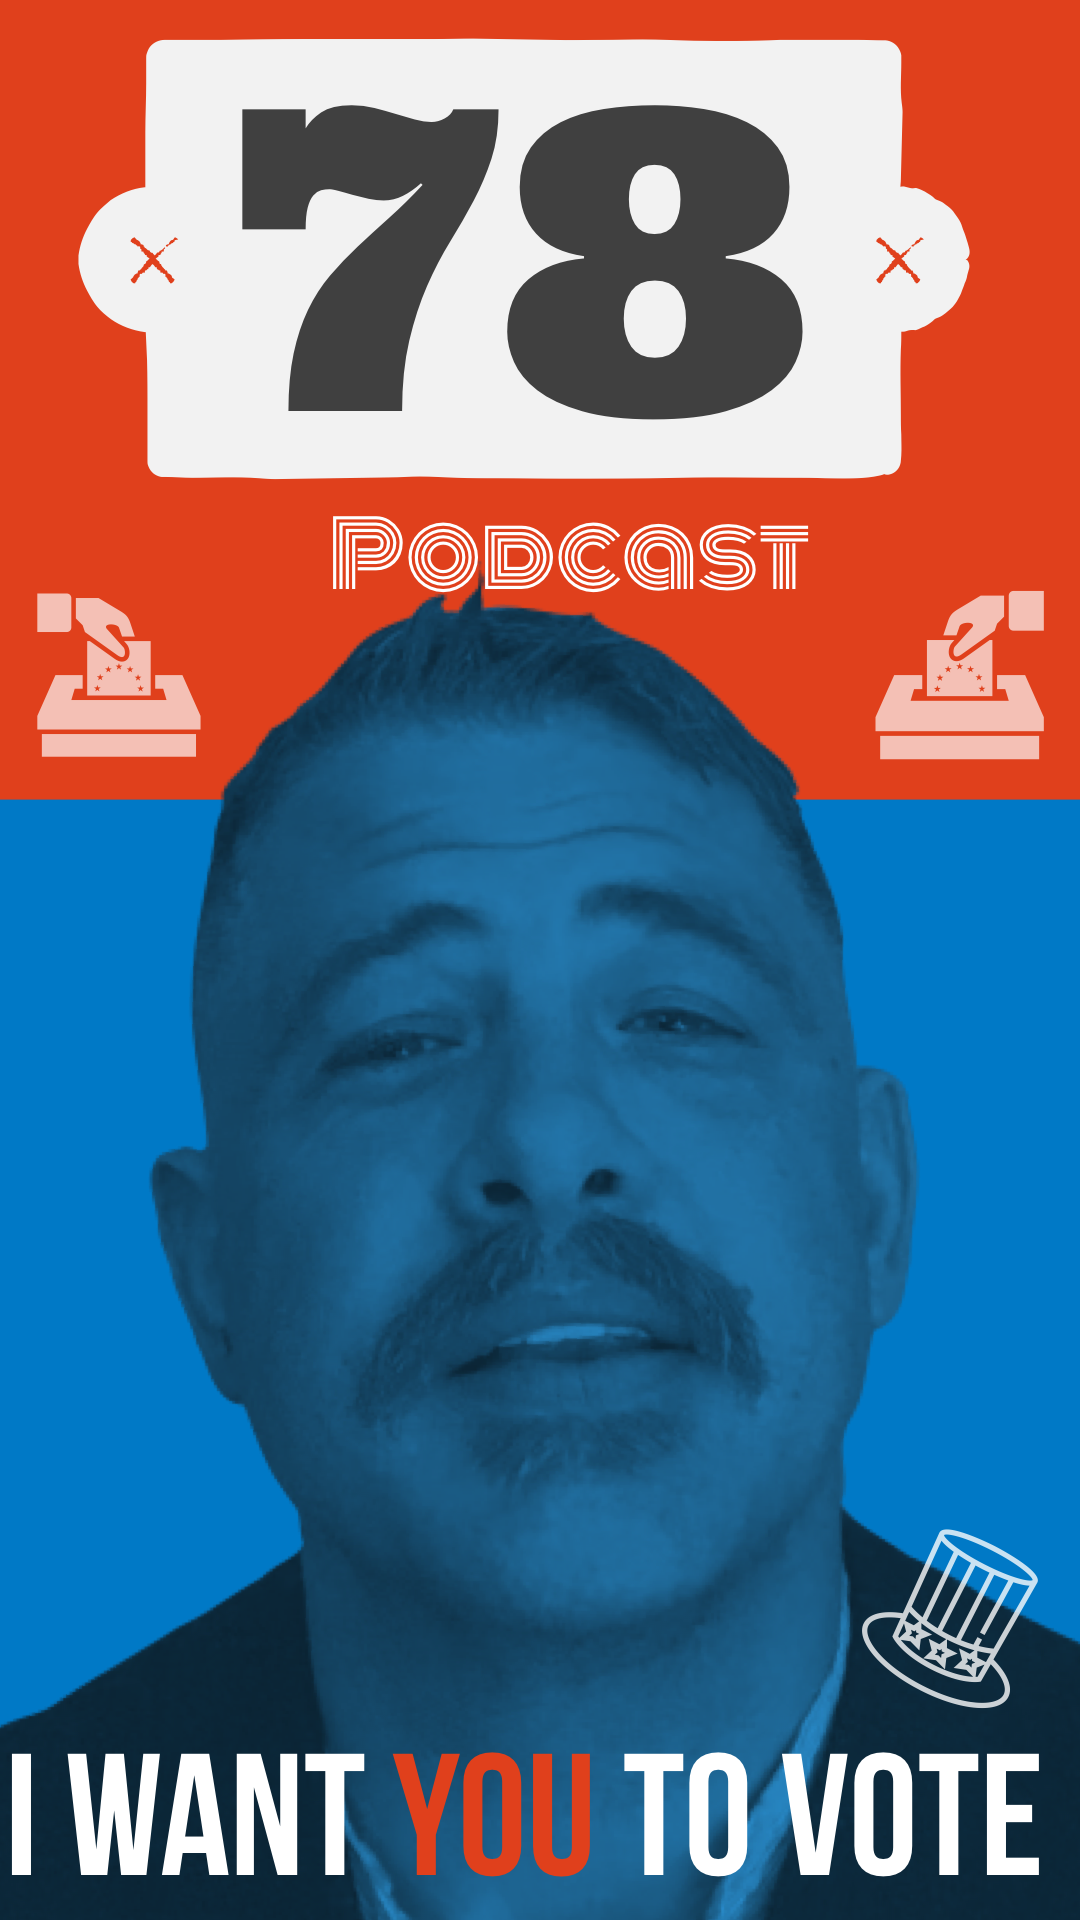 VOTE Edition Podcast